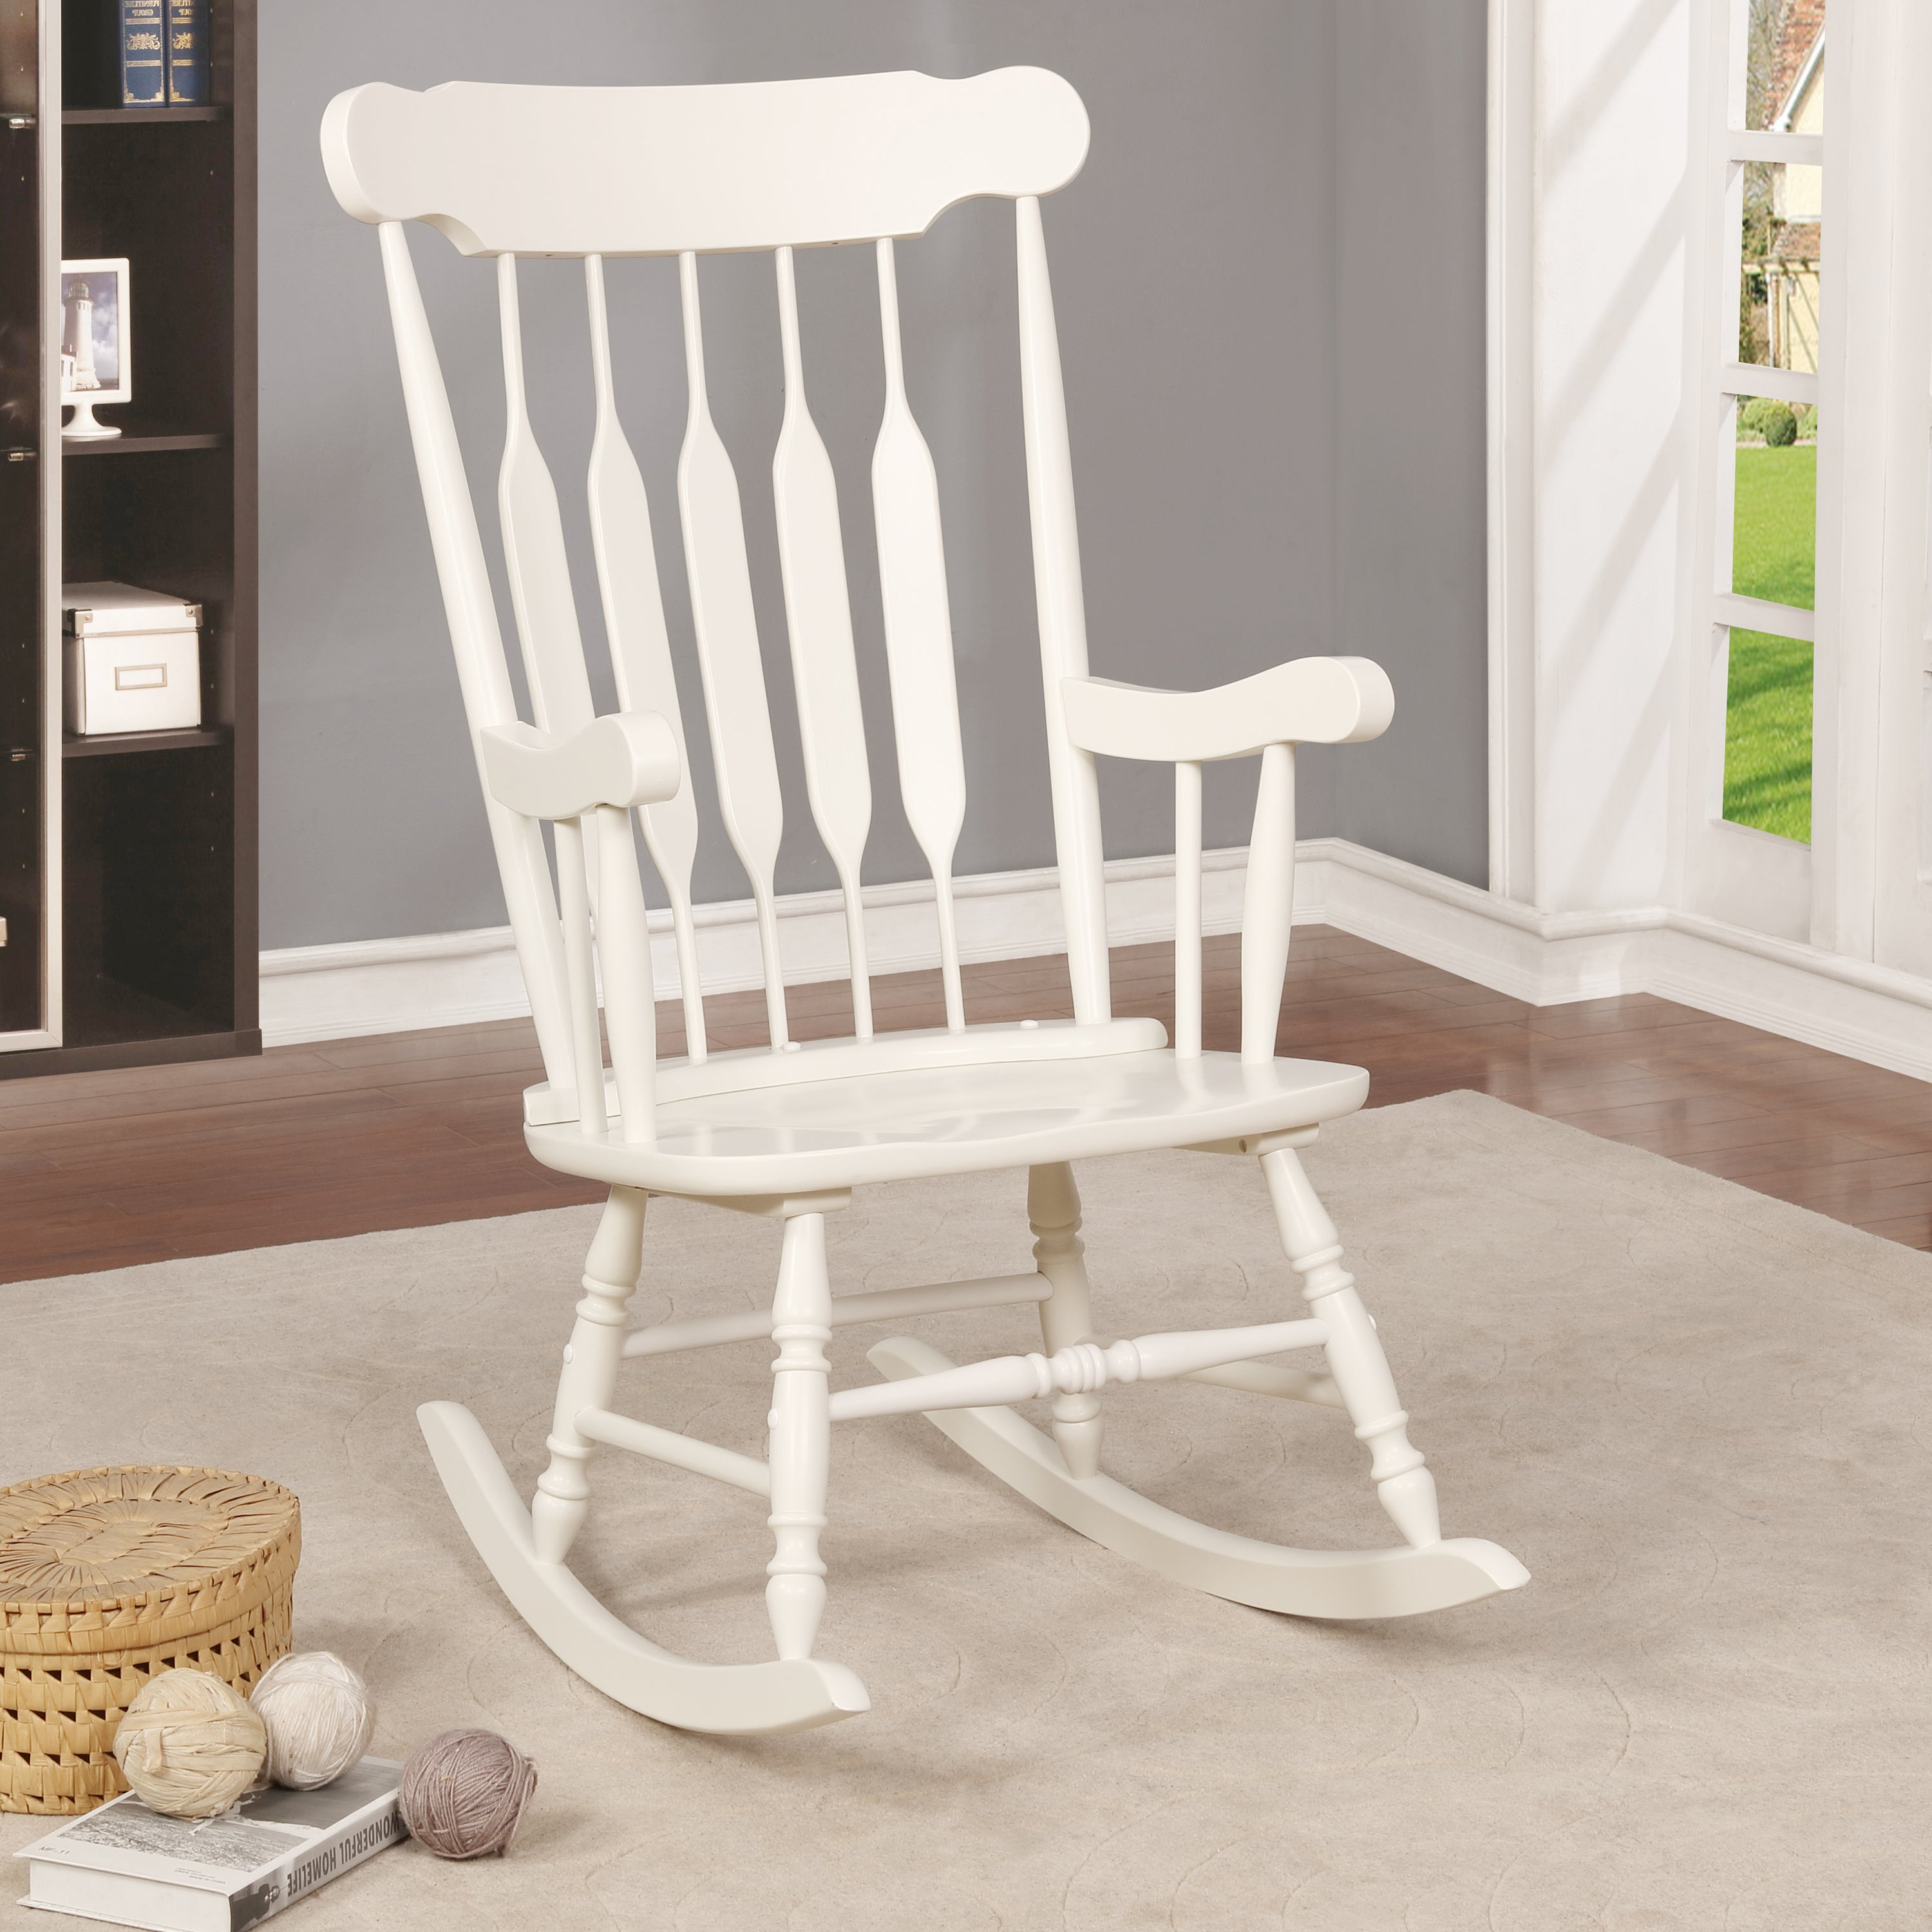 Betty Sue Country Rocking Chairfoa Intended For Ethel Country White Rocking Chairs (#3 of 20)